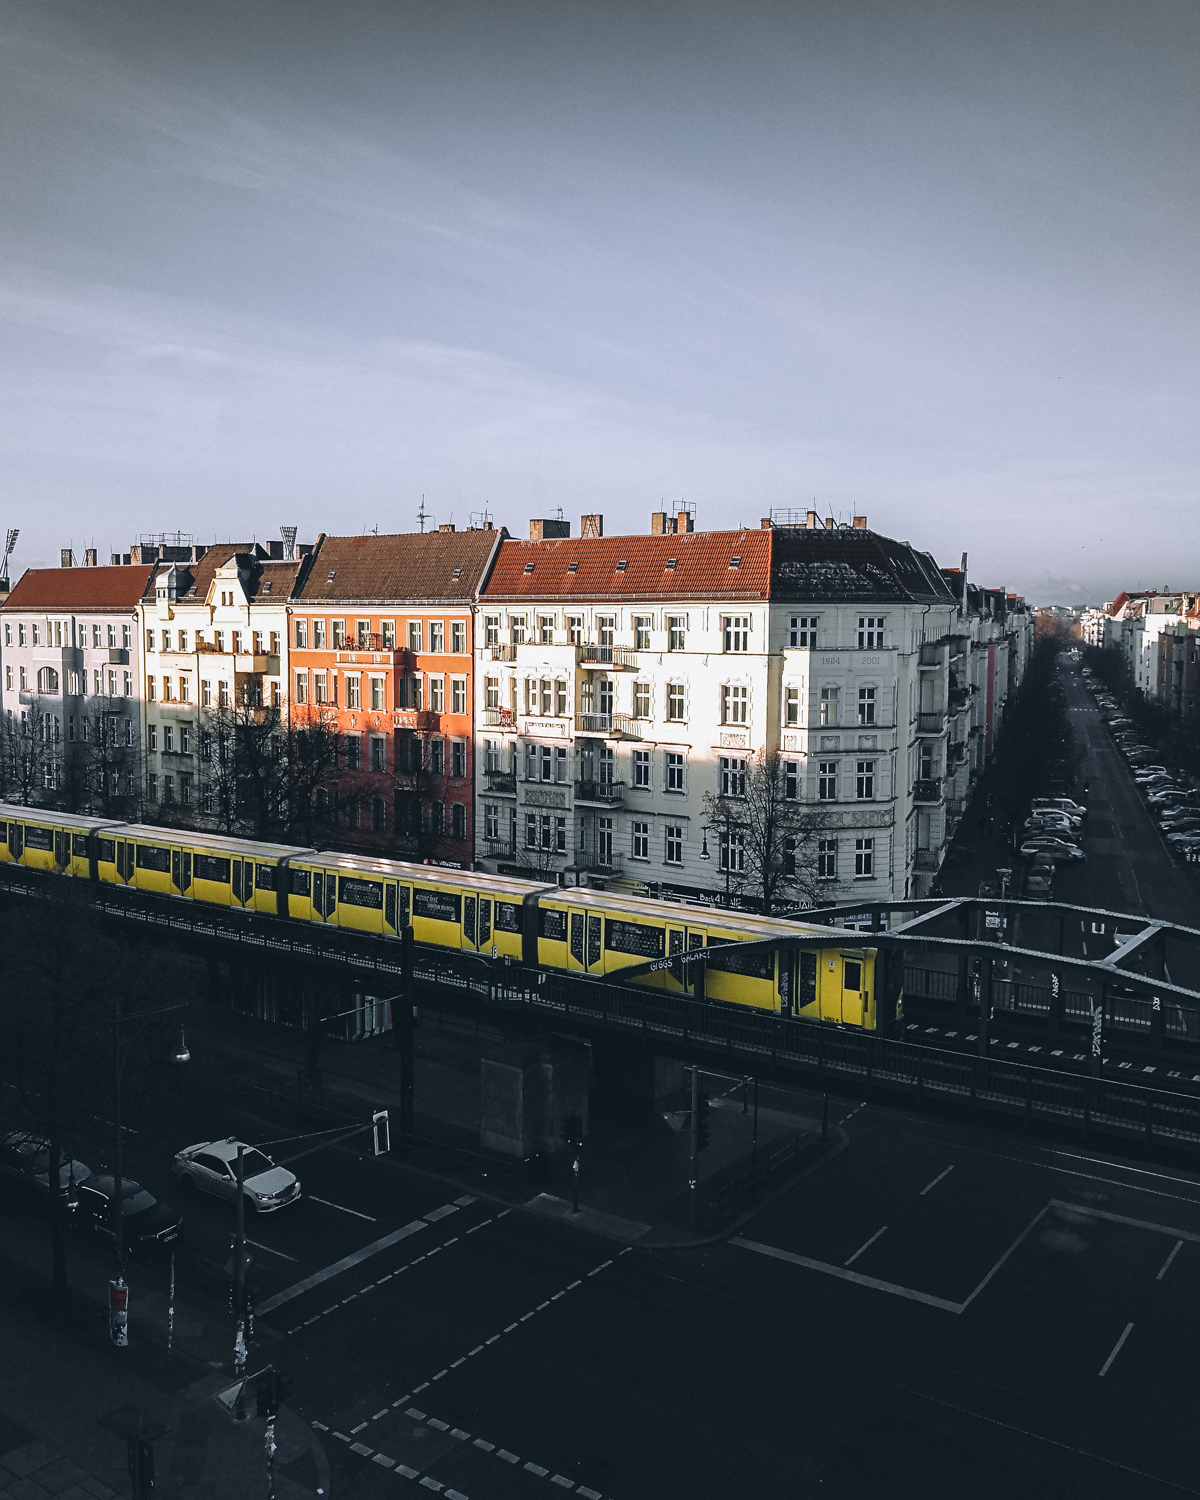 Waiting for Berlin's famous yellow subways to roll through the frame for an extra bit of dynamic composition.